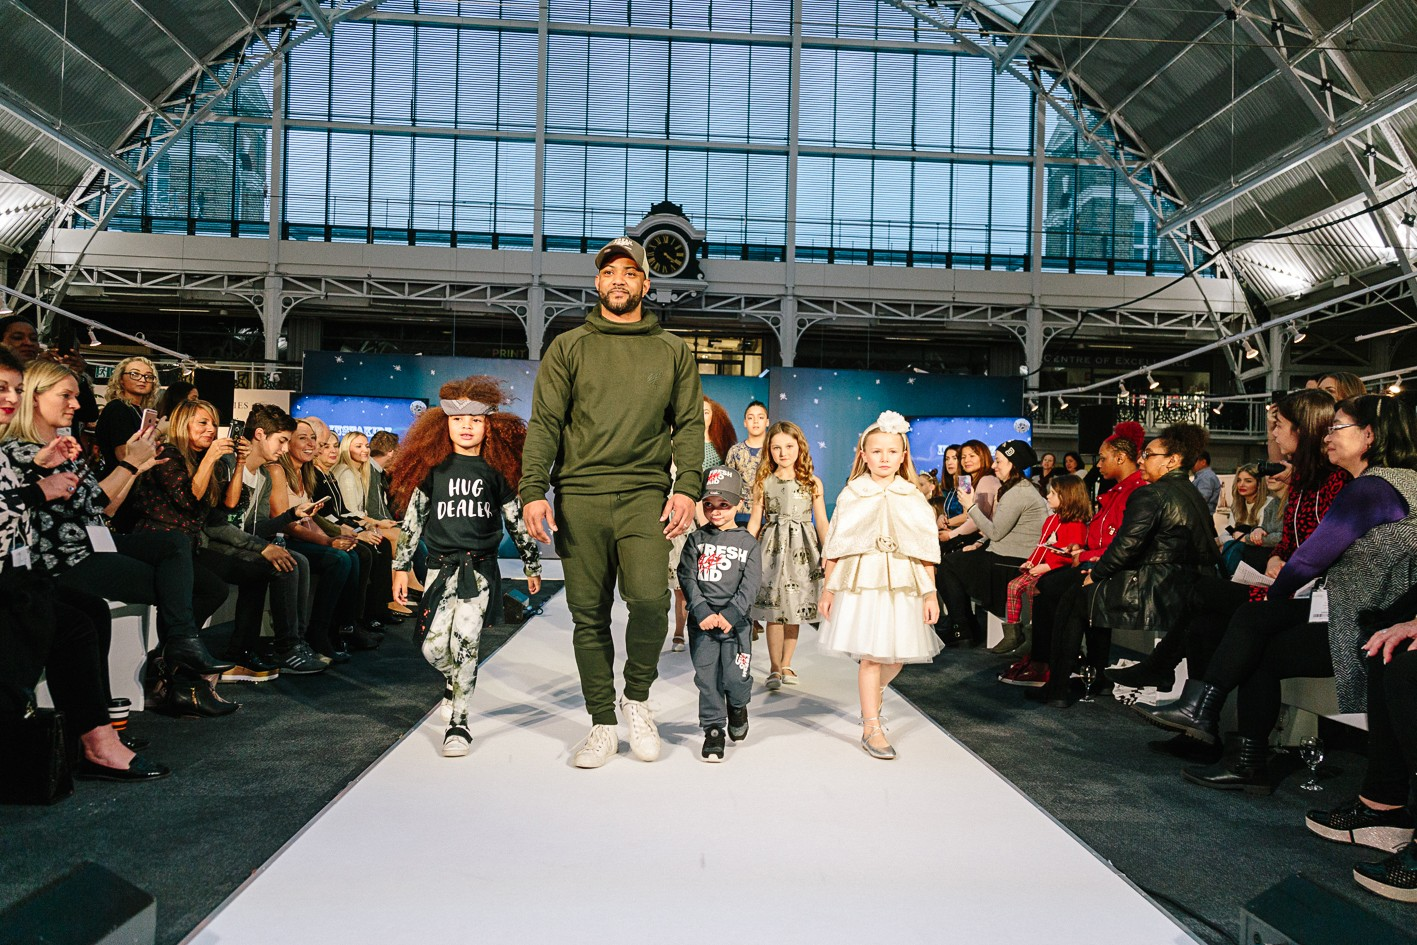 Insta Kids take over the Bubble catwalk show